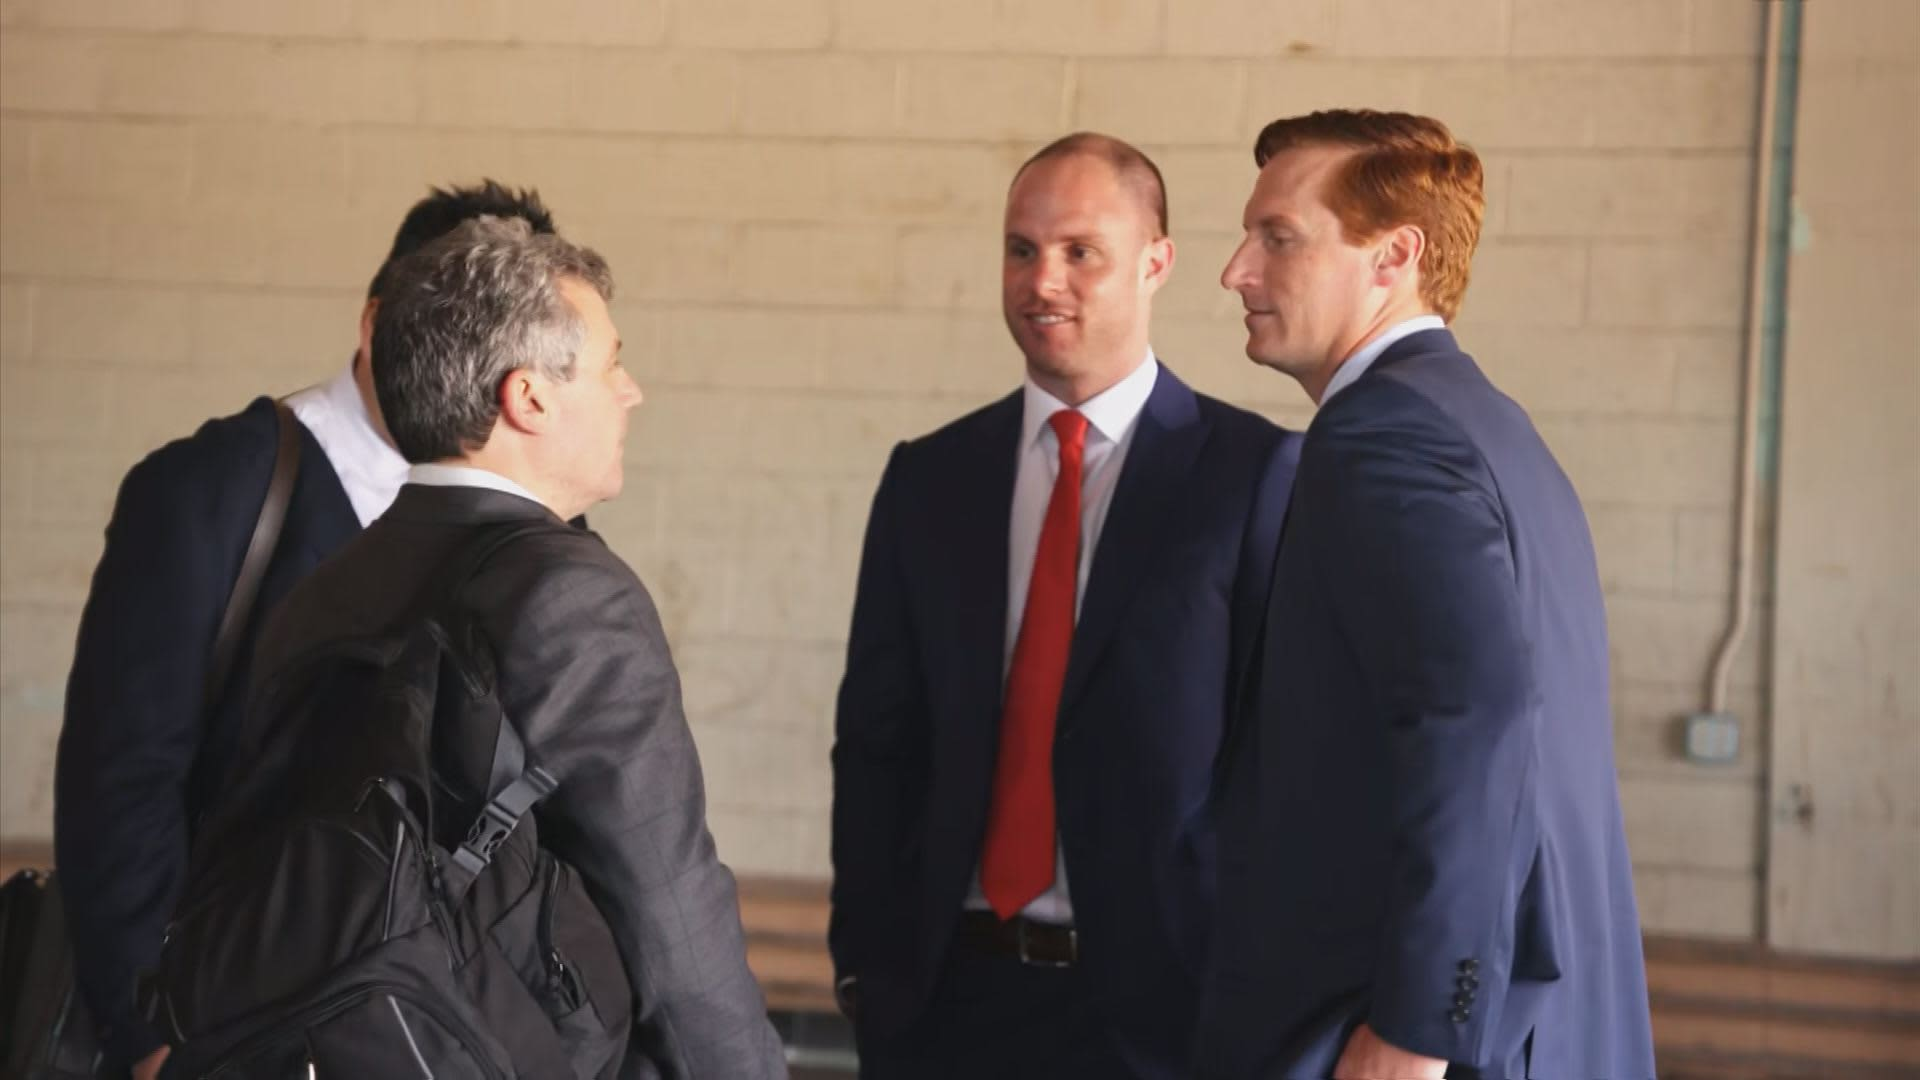 John O'Rourke (right) former CEO of Riot Blockchain after a shareholders meeting in Oklahoma City on May 9, 2018.